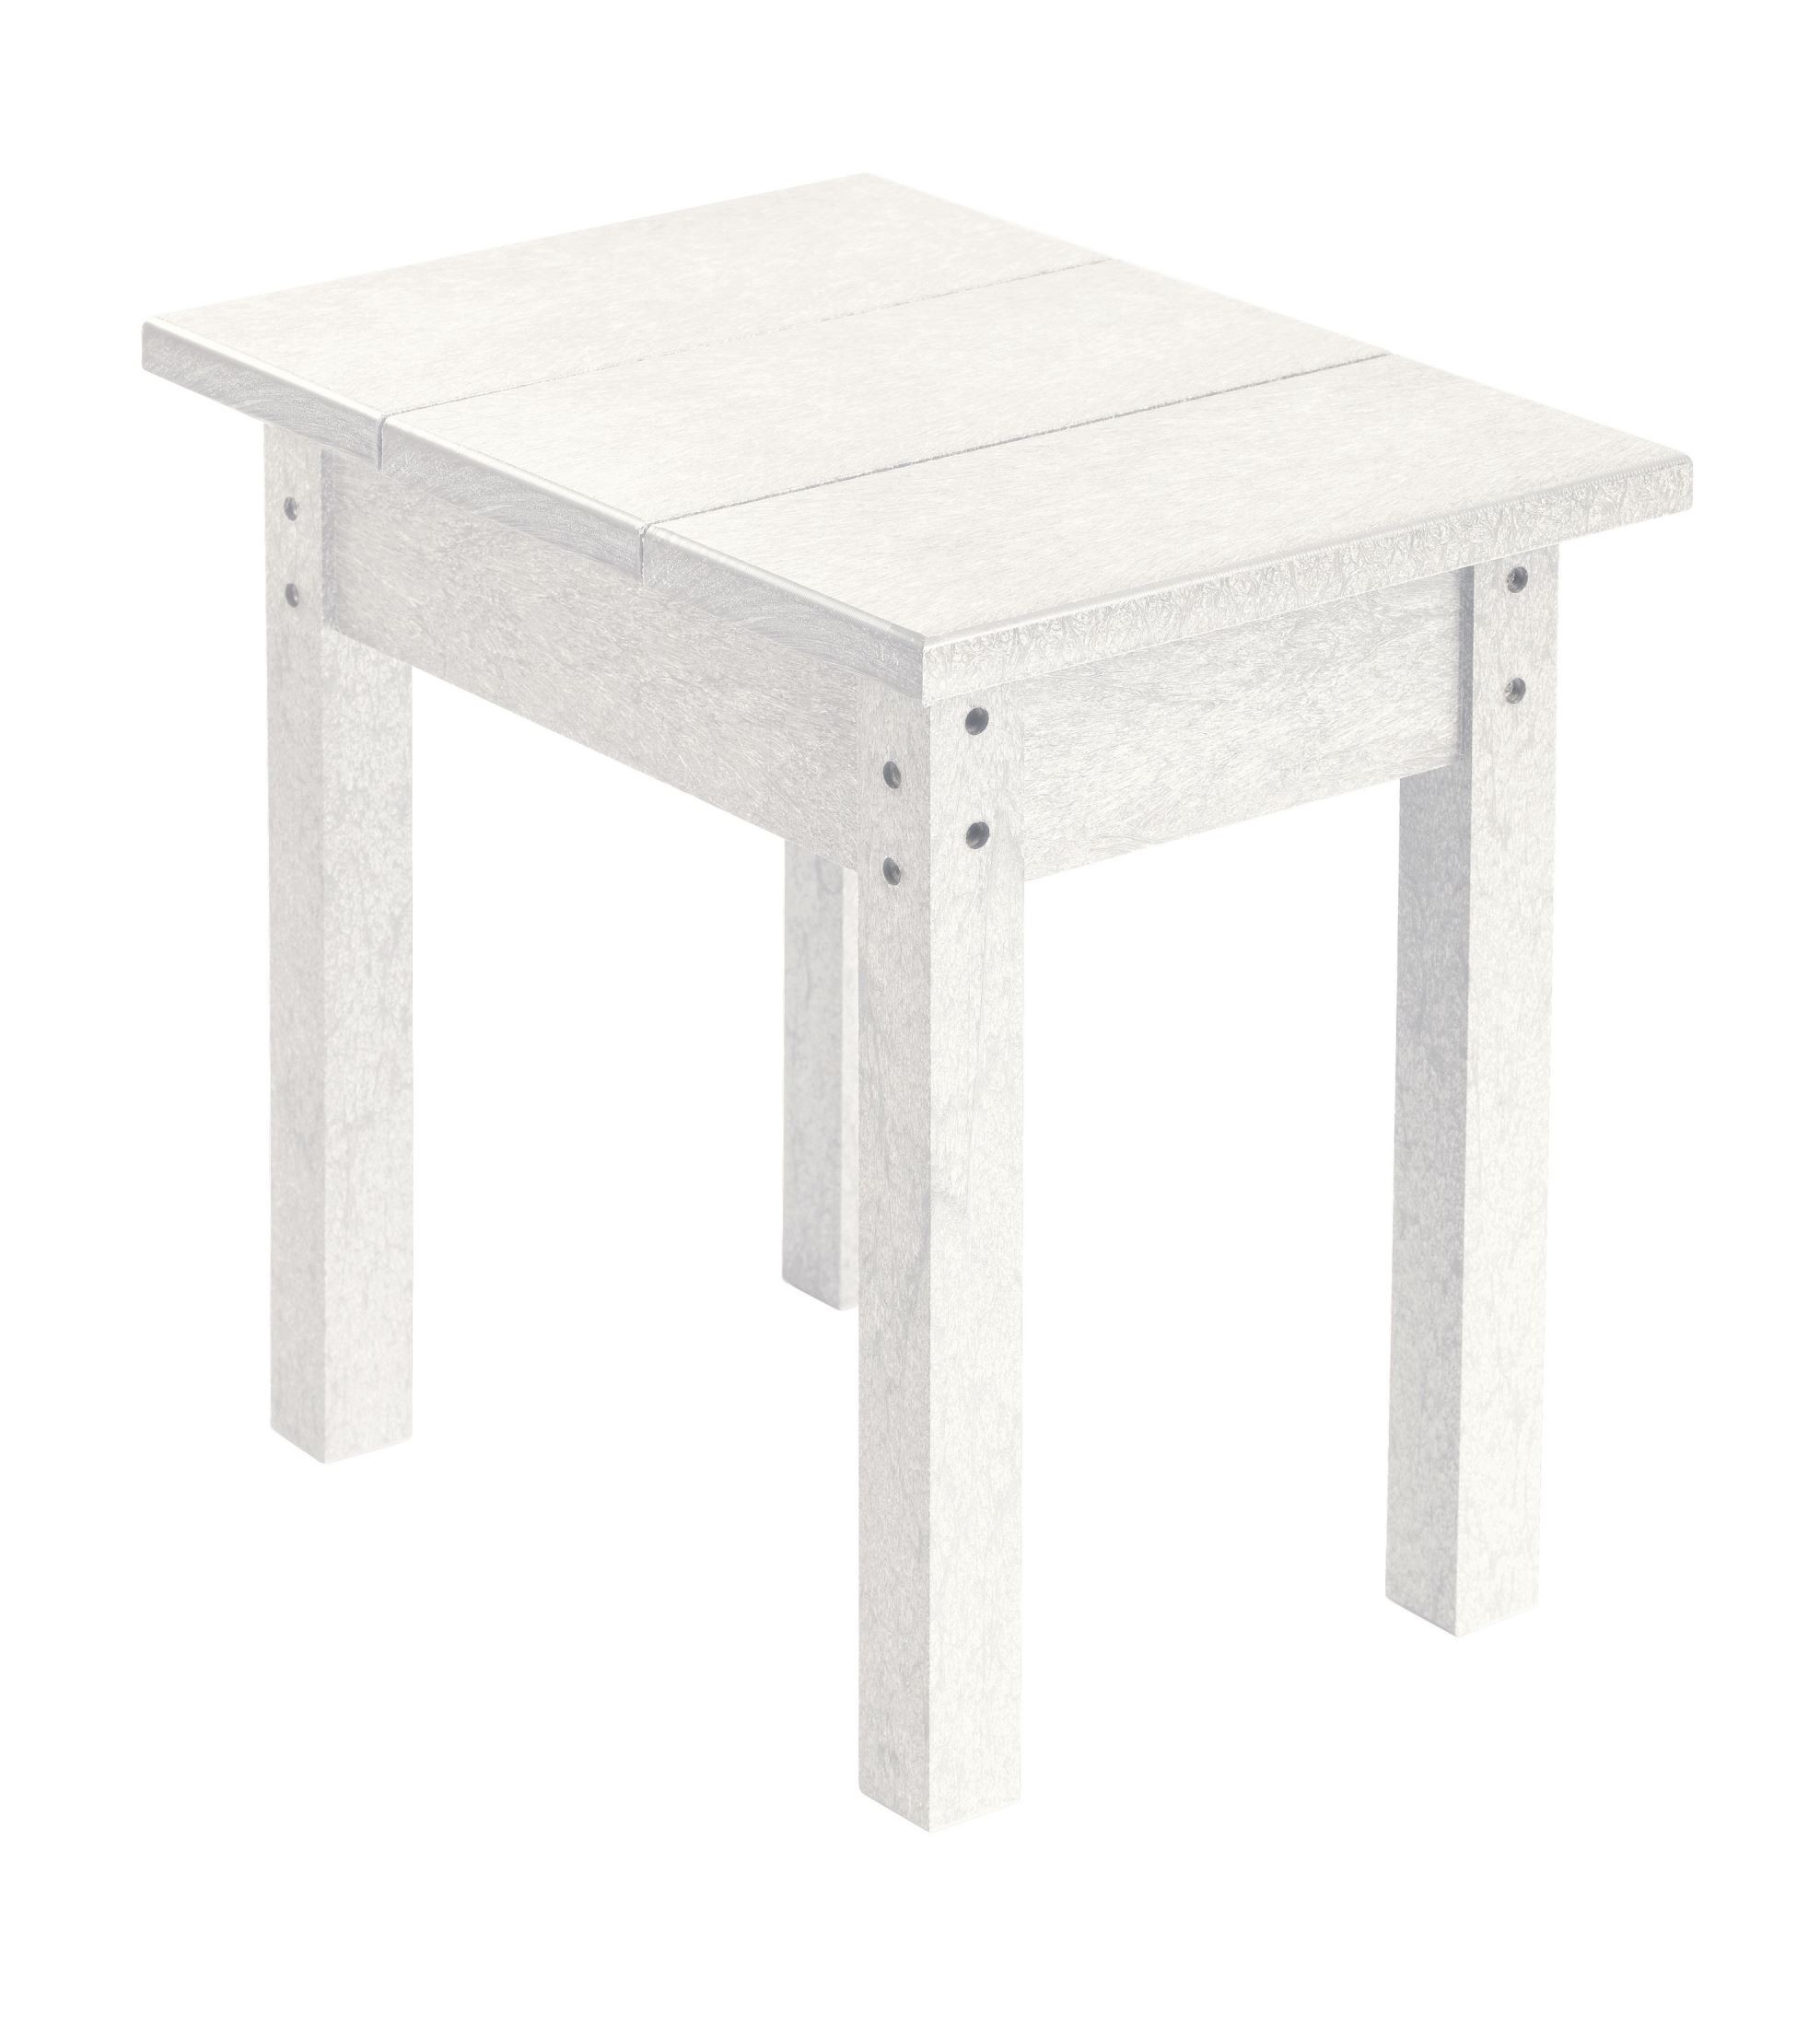 Generations White Small Side Table From CR Plastic (T01-02